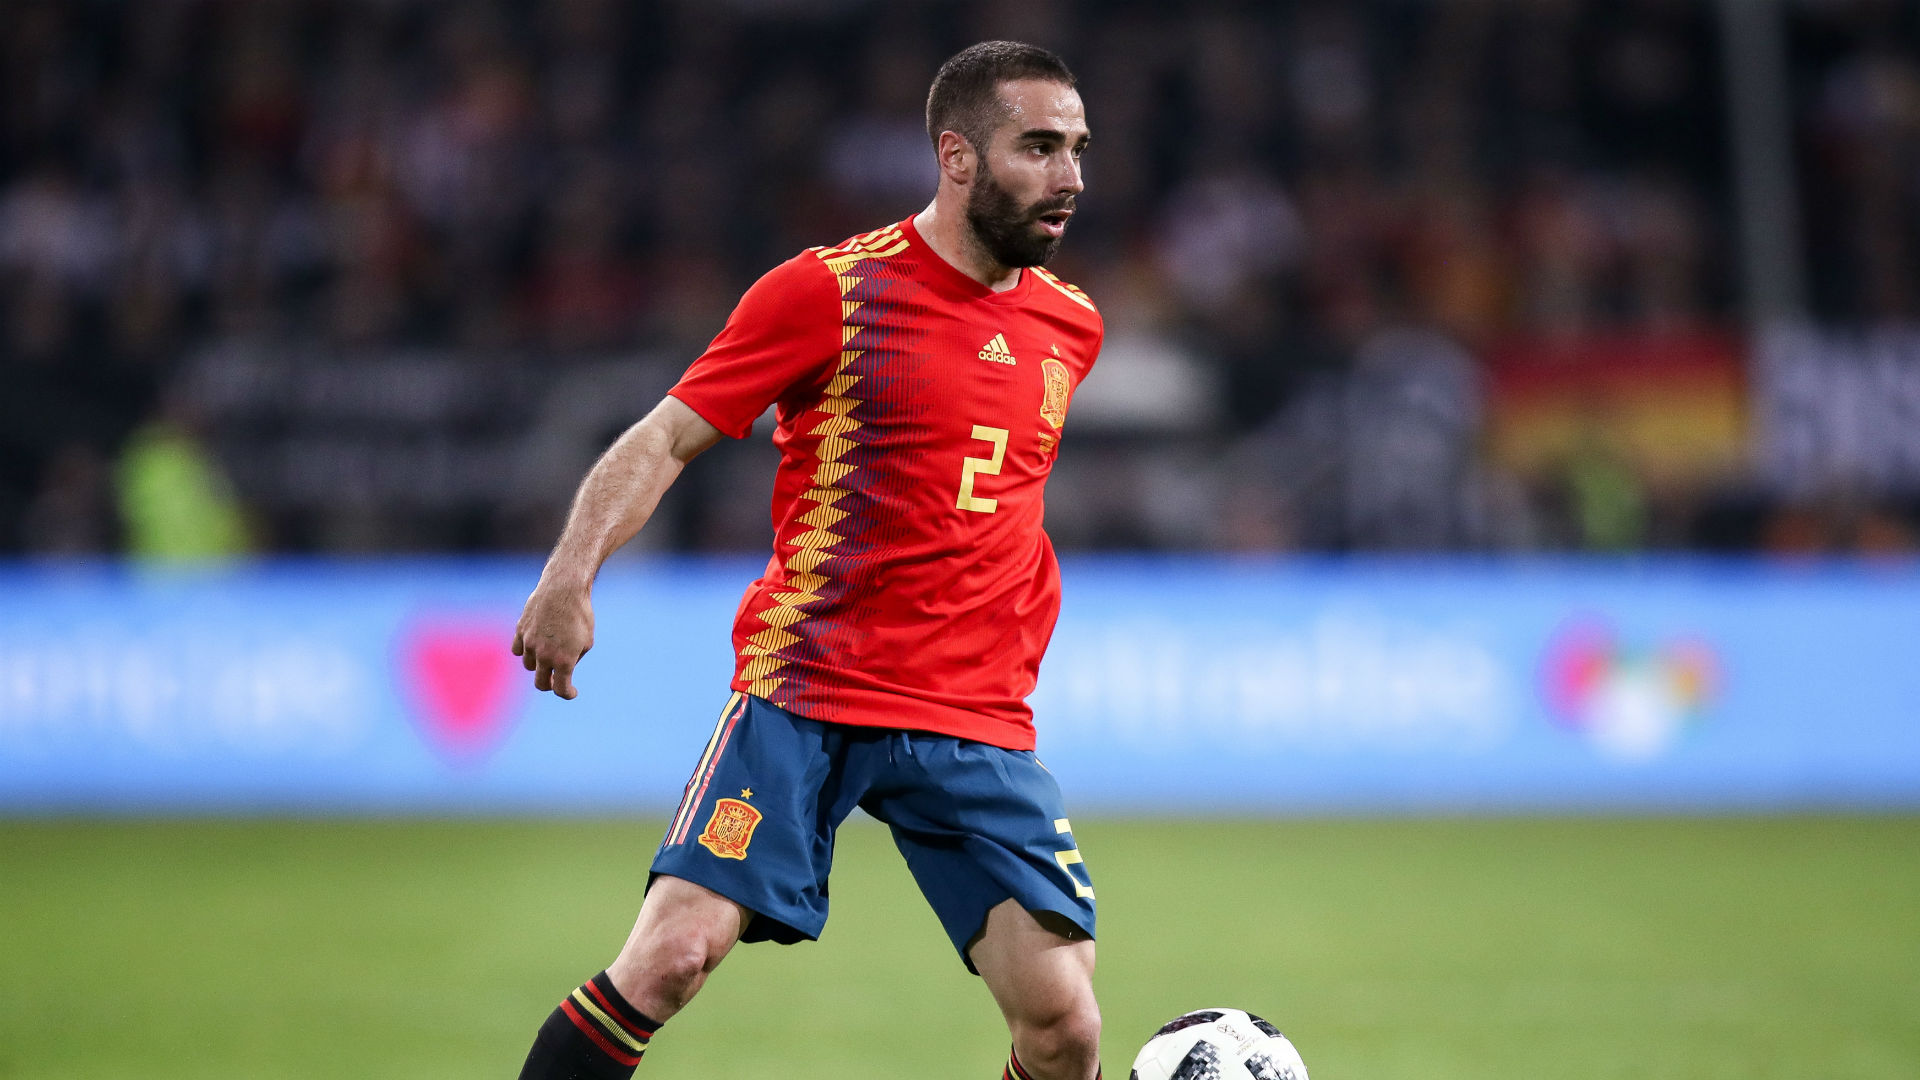 Carvajal could miss Spain's first two World Cup games - Lopetegui